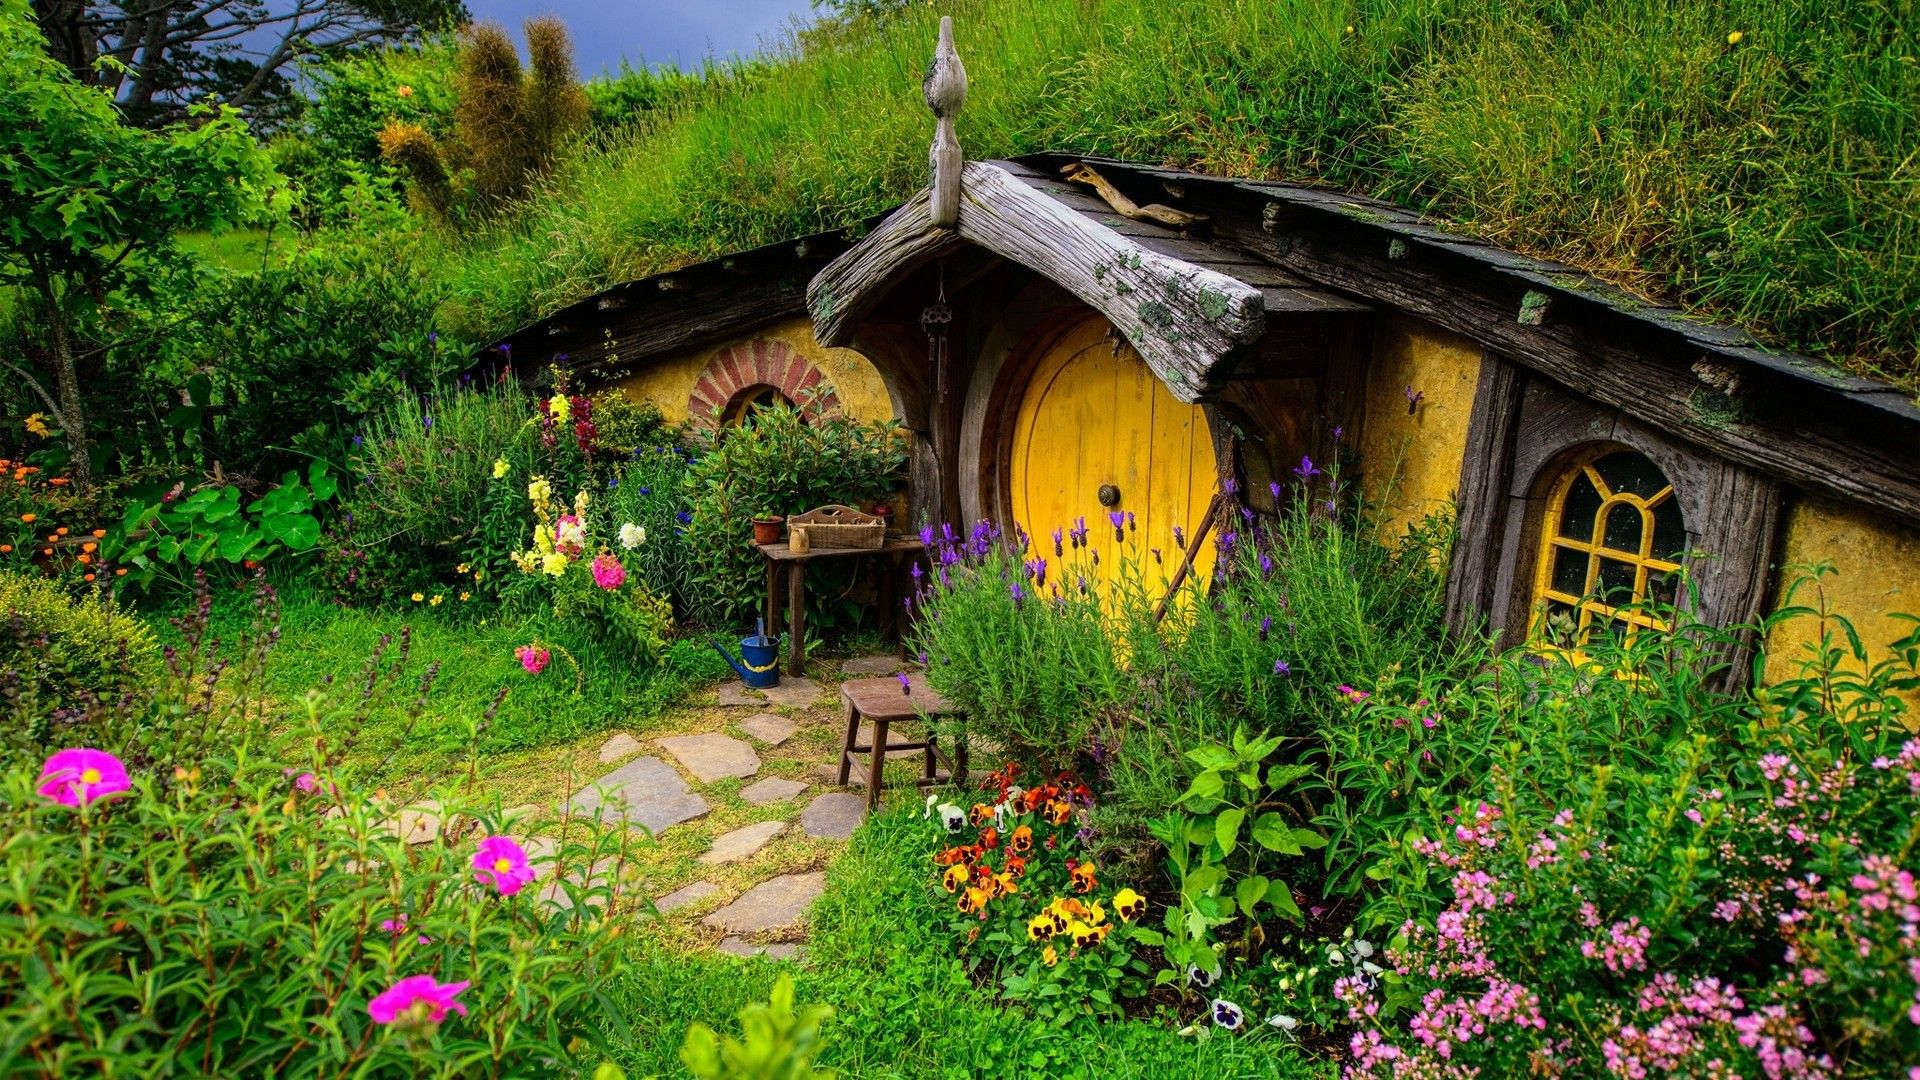 A Hobbit House in New Zealand